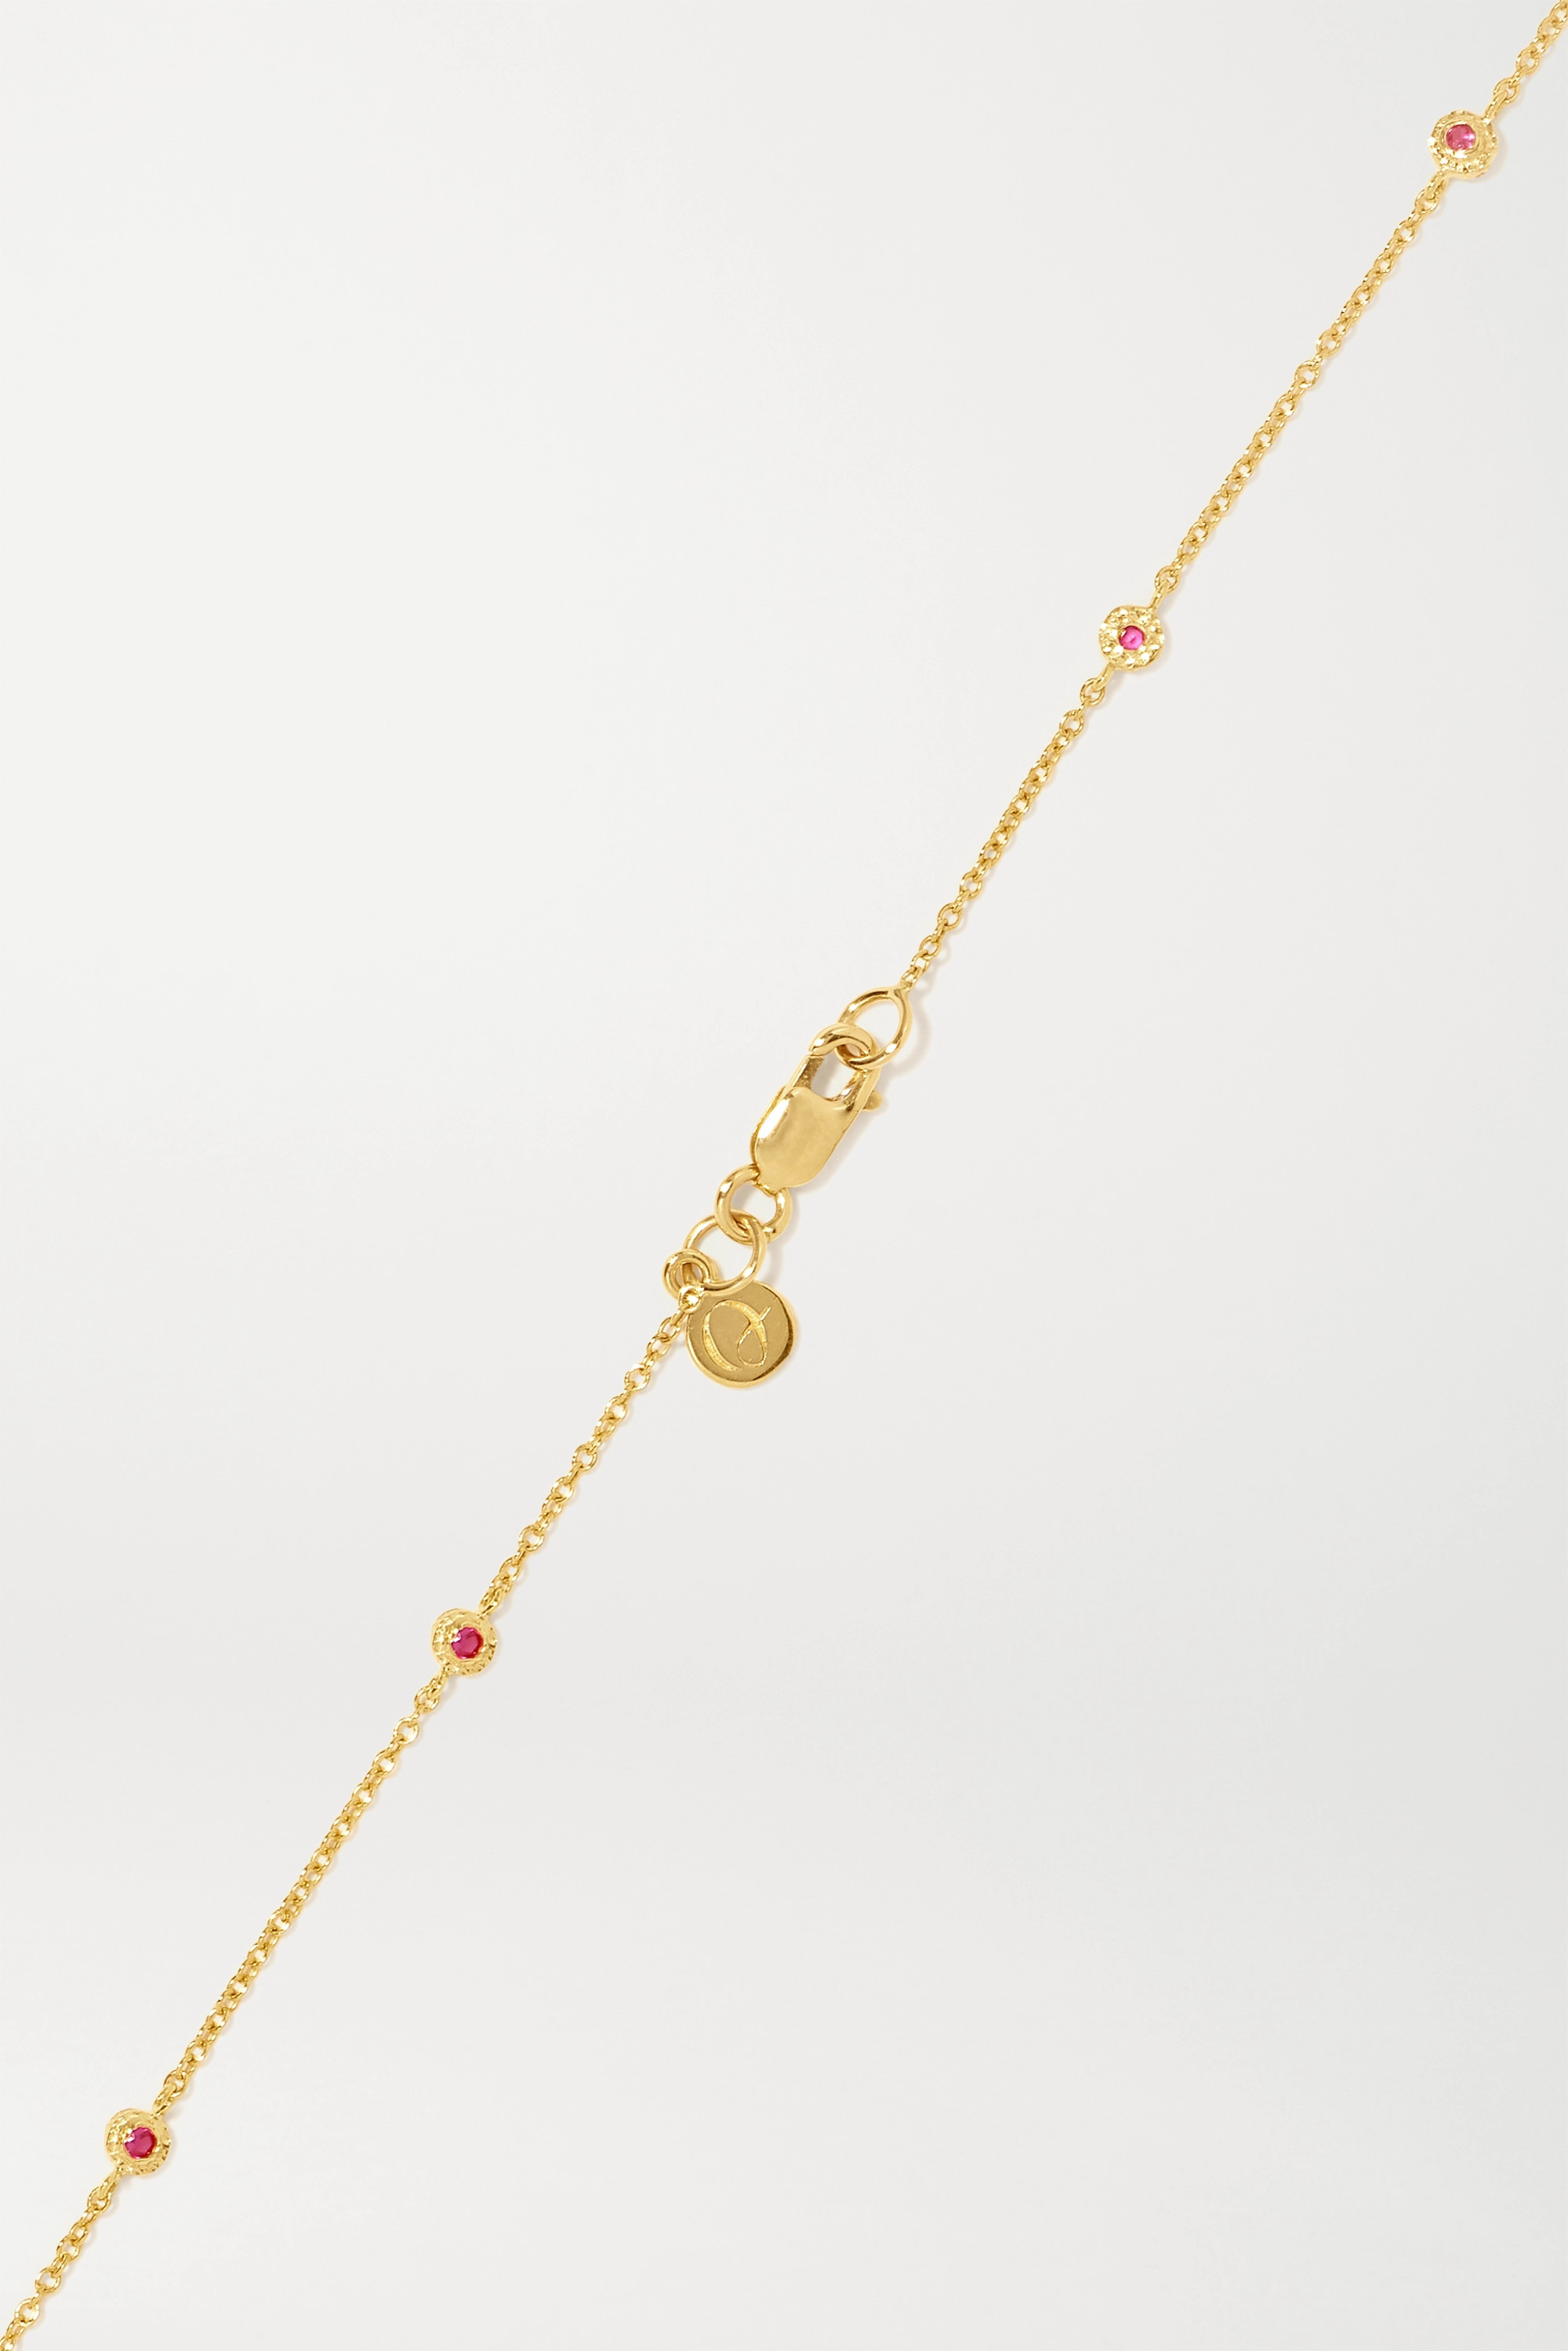 Octavia Elizabeth + NET SUSTAIN Nesting Gem 18-karat gold ruby necklace